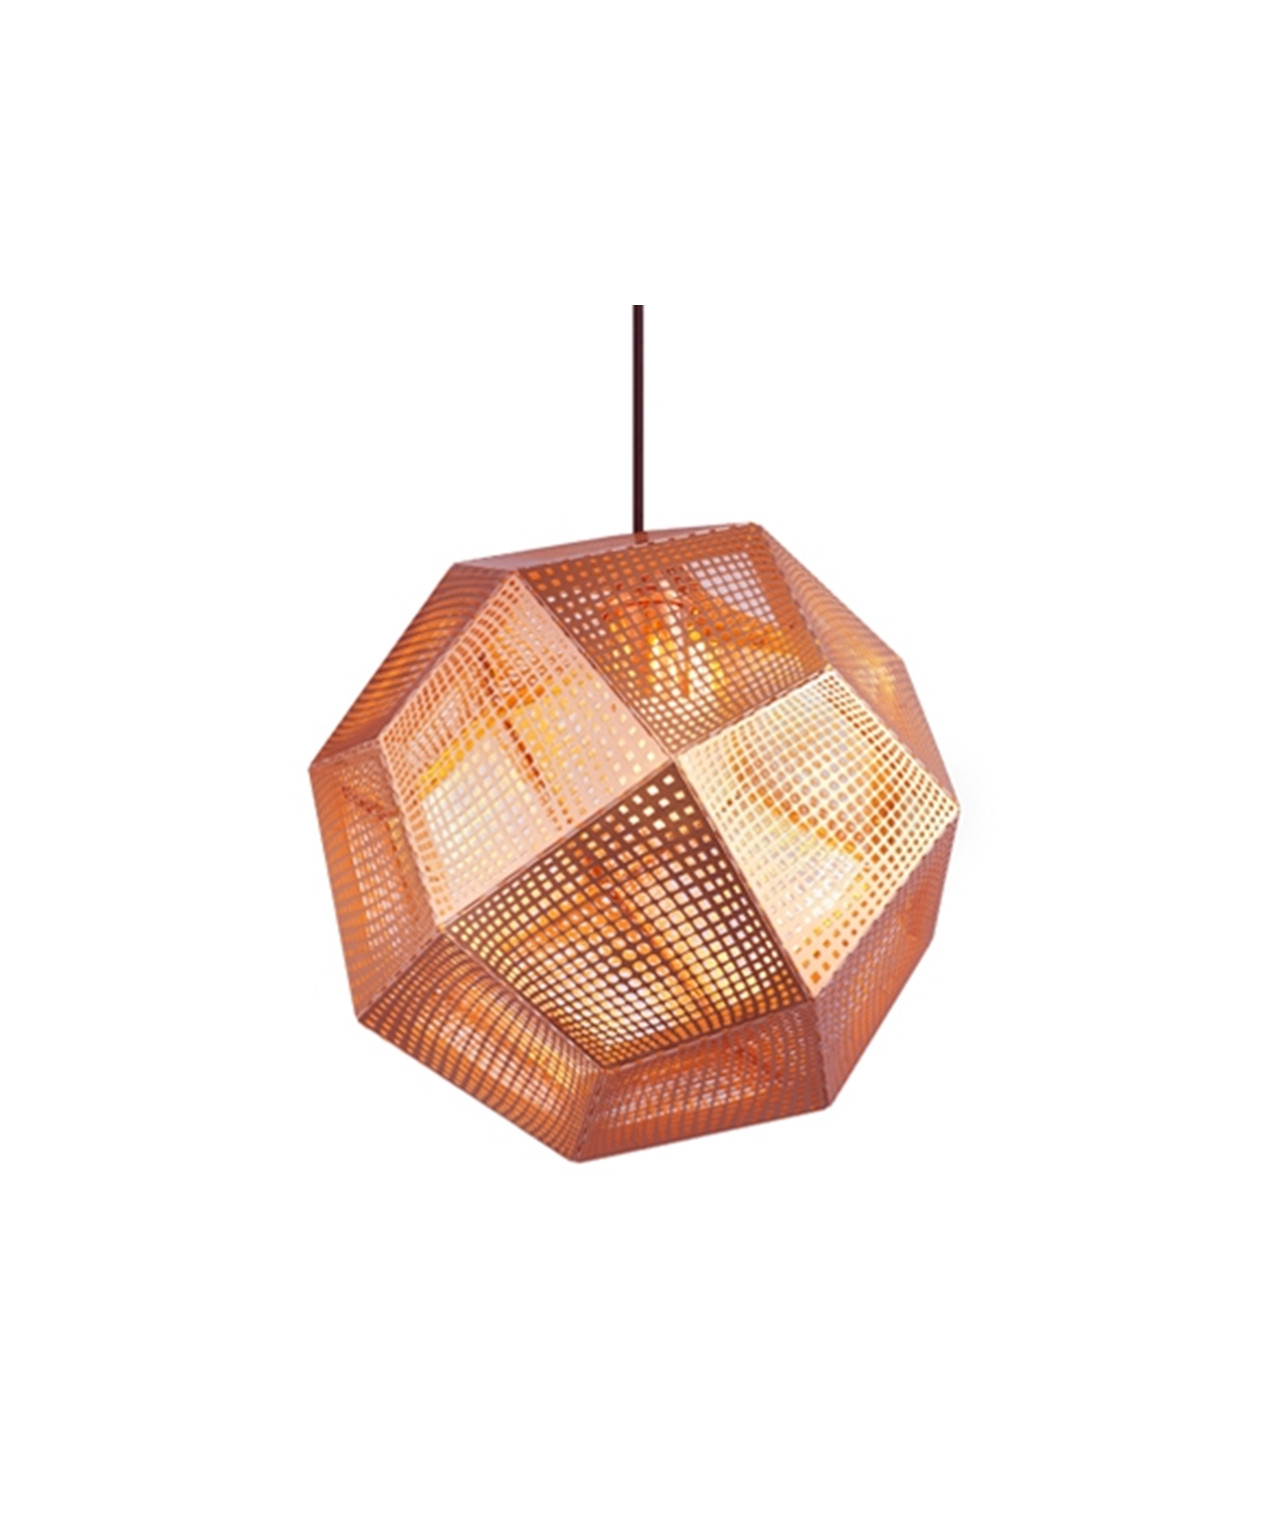 Image of   Etch Kobber Pendel - Tom Dixon